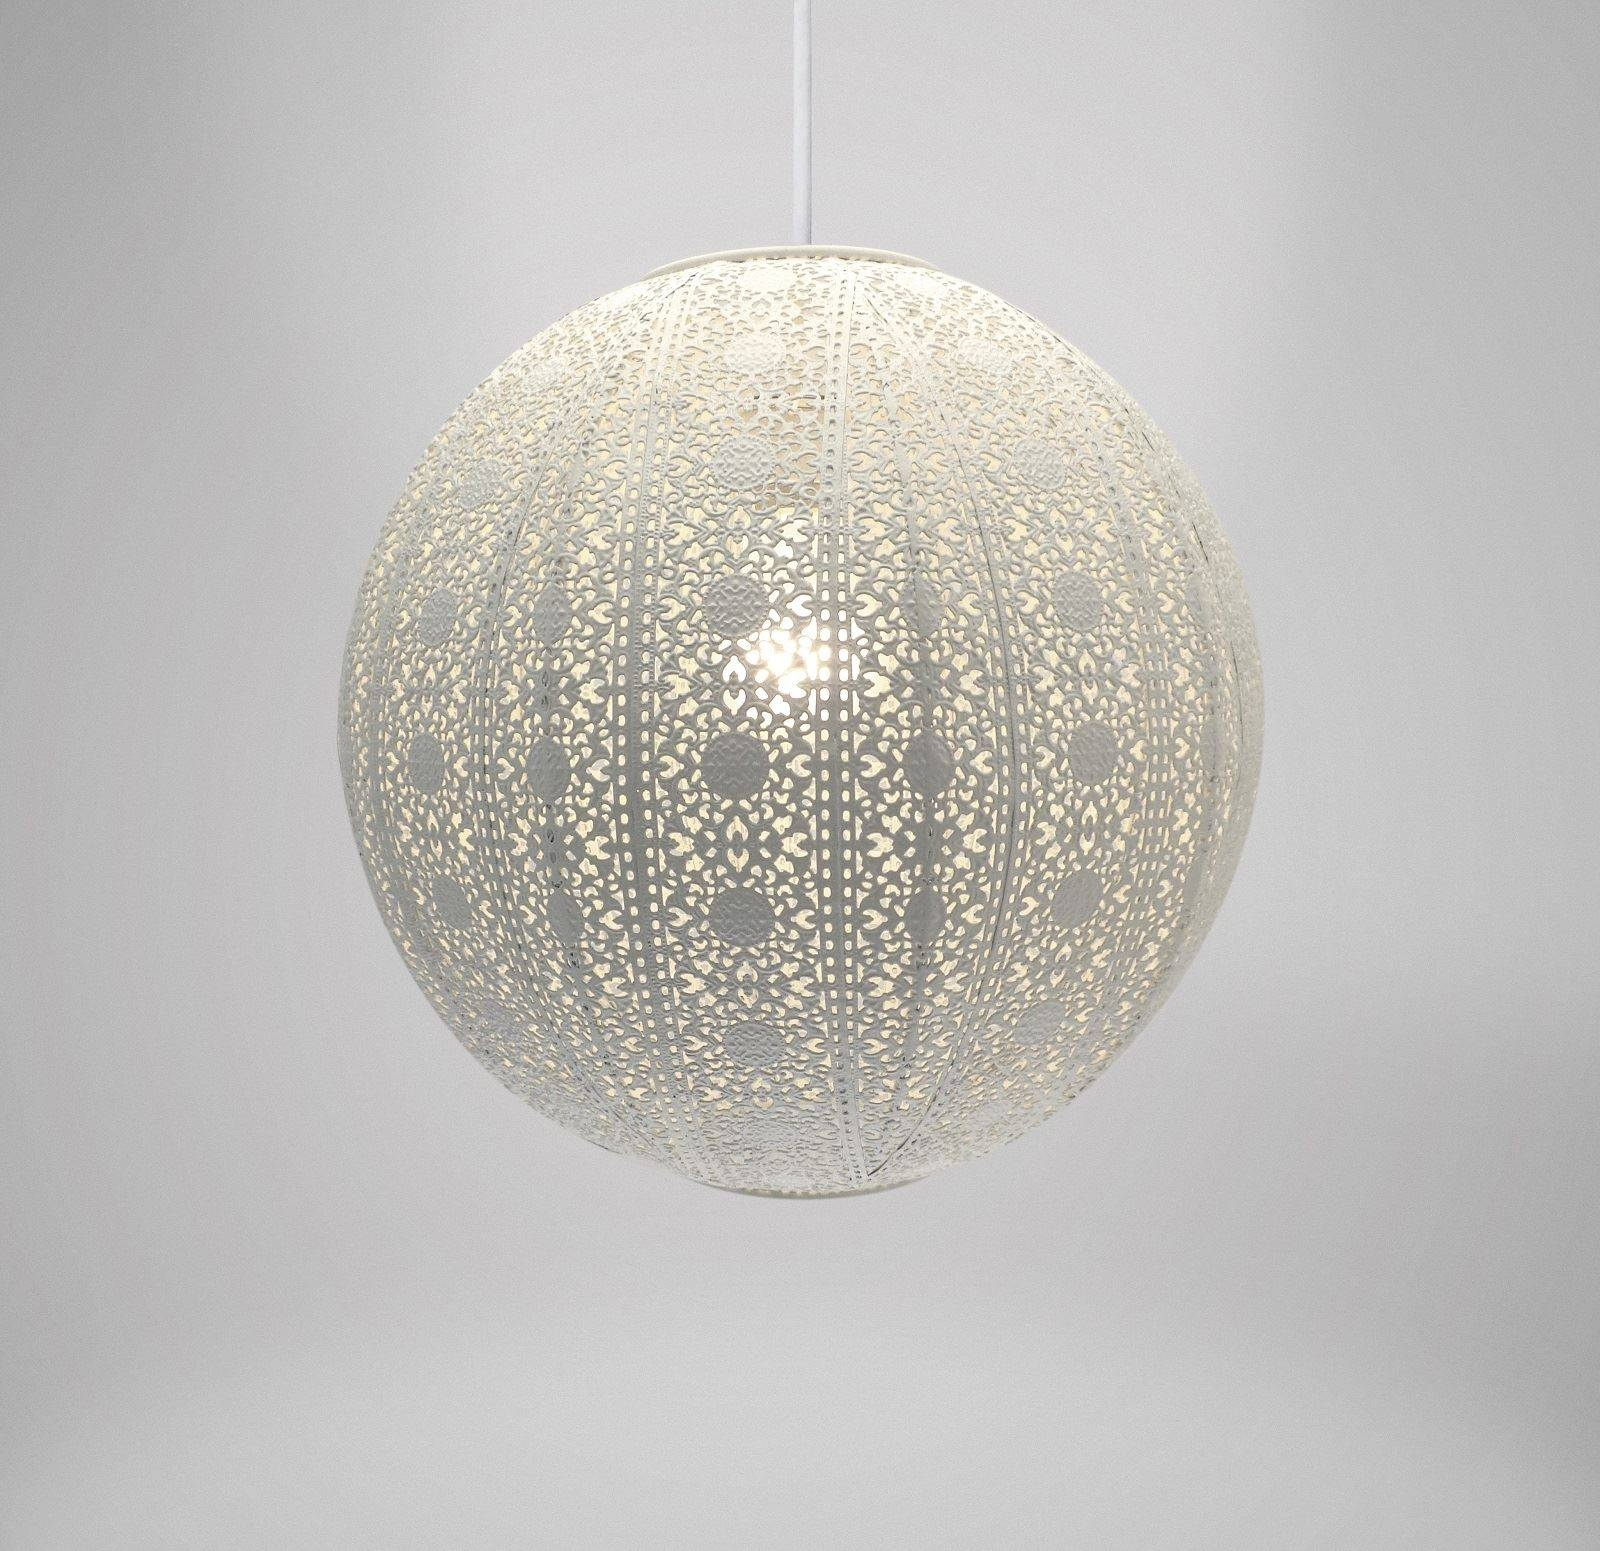 Easy Fit Moroccan Style Metal Pendant Light Fitting Shade Ceiling inside Moroccan Style Lights Shades (Image 5 of 15)